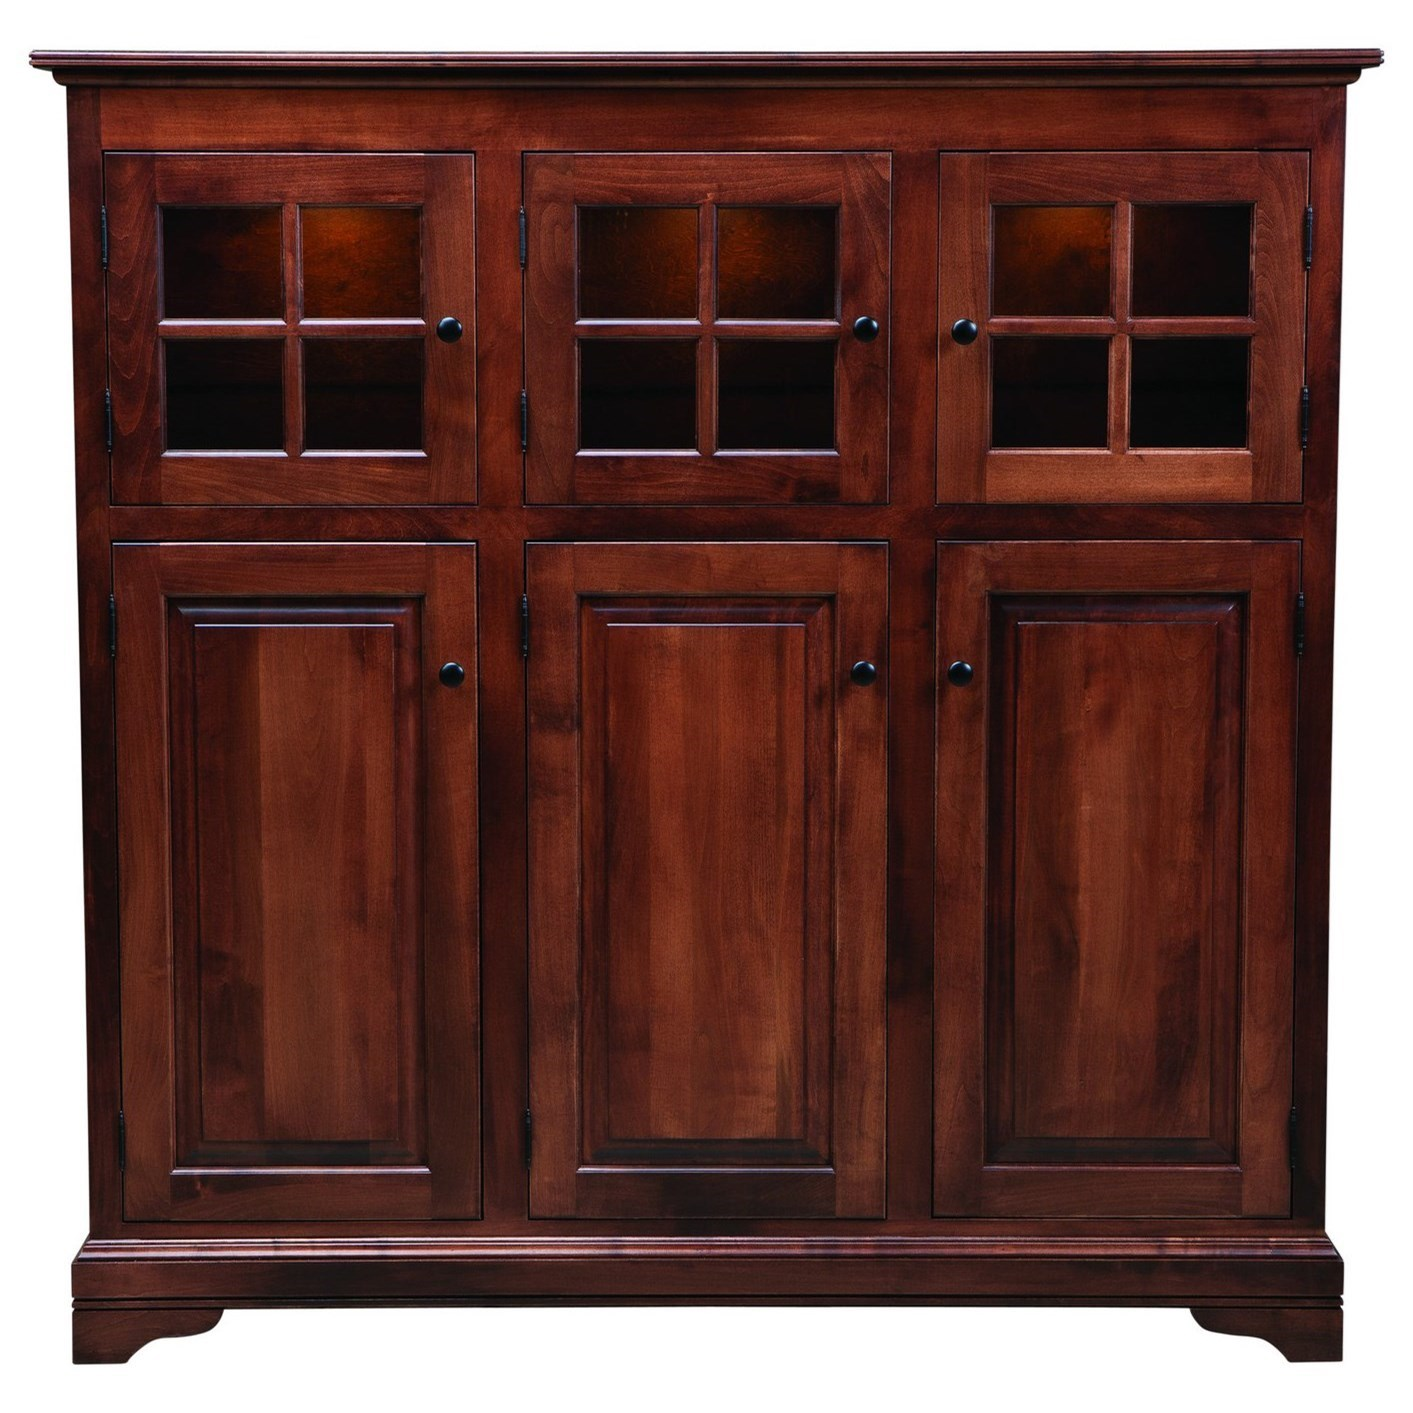 New England Door Cabinet by Palettes by Winesburg at Dinette Depot